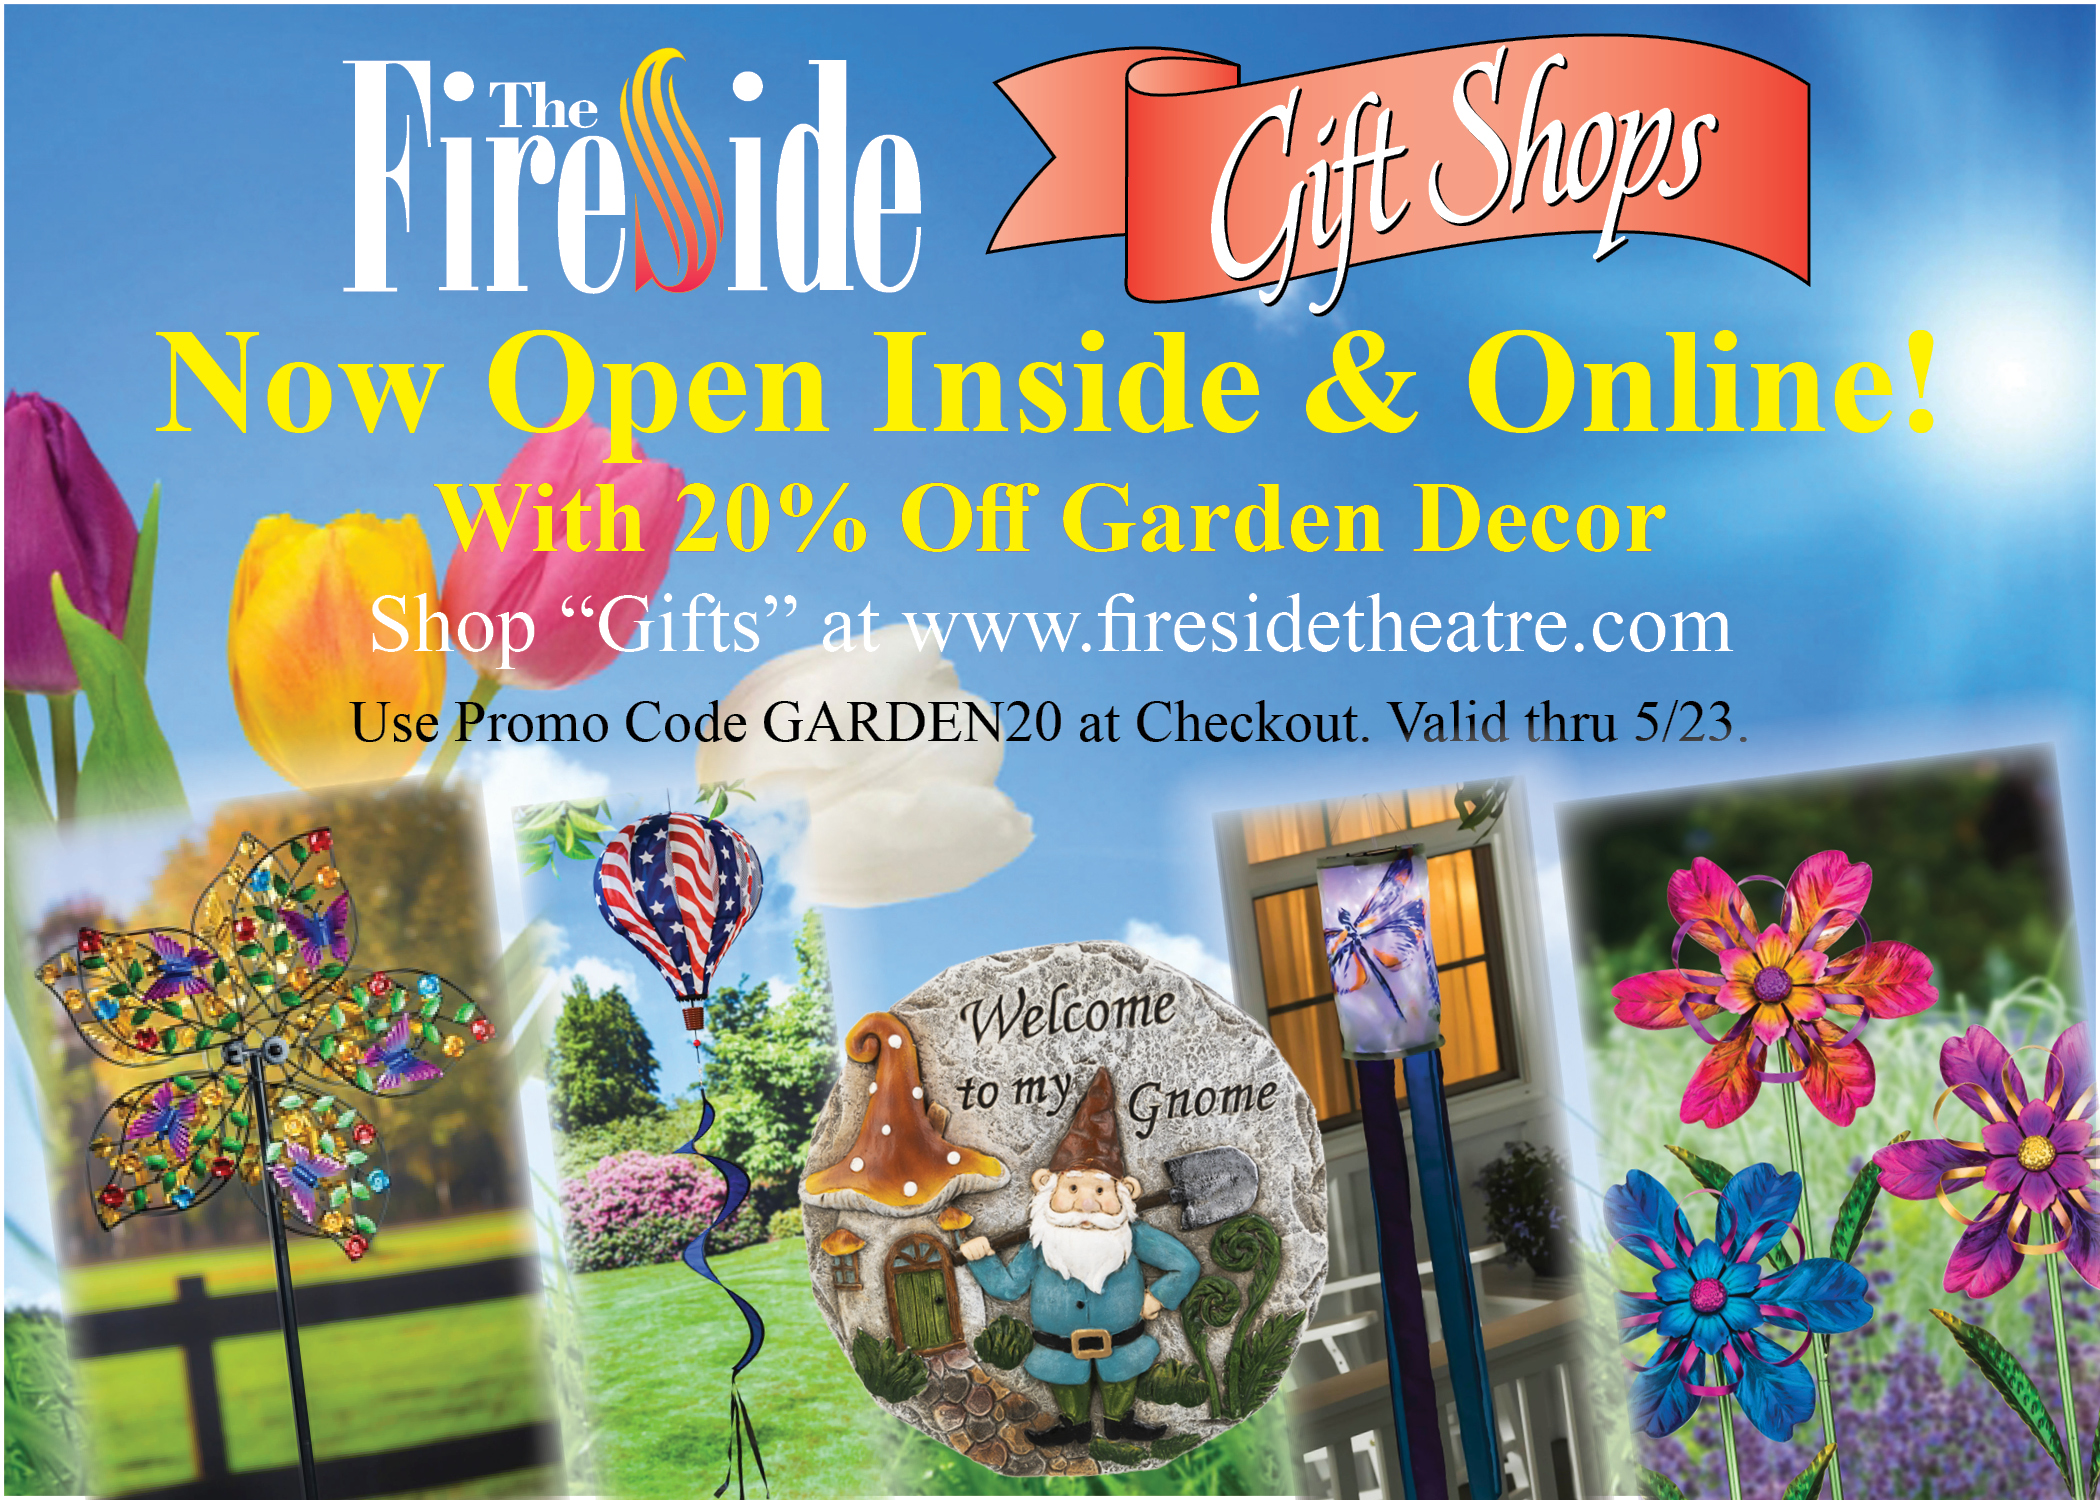 Garden Decor sale